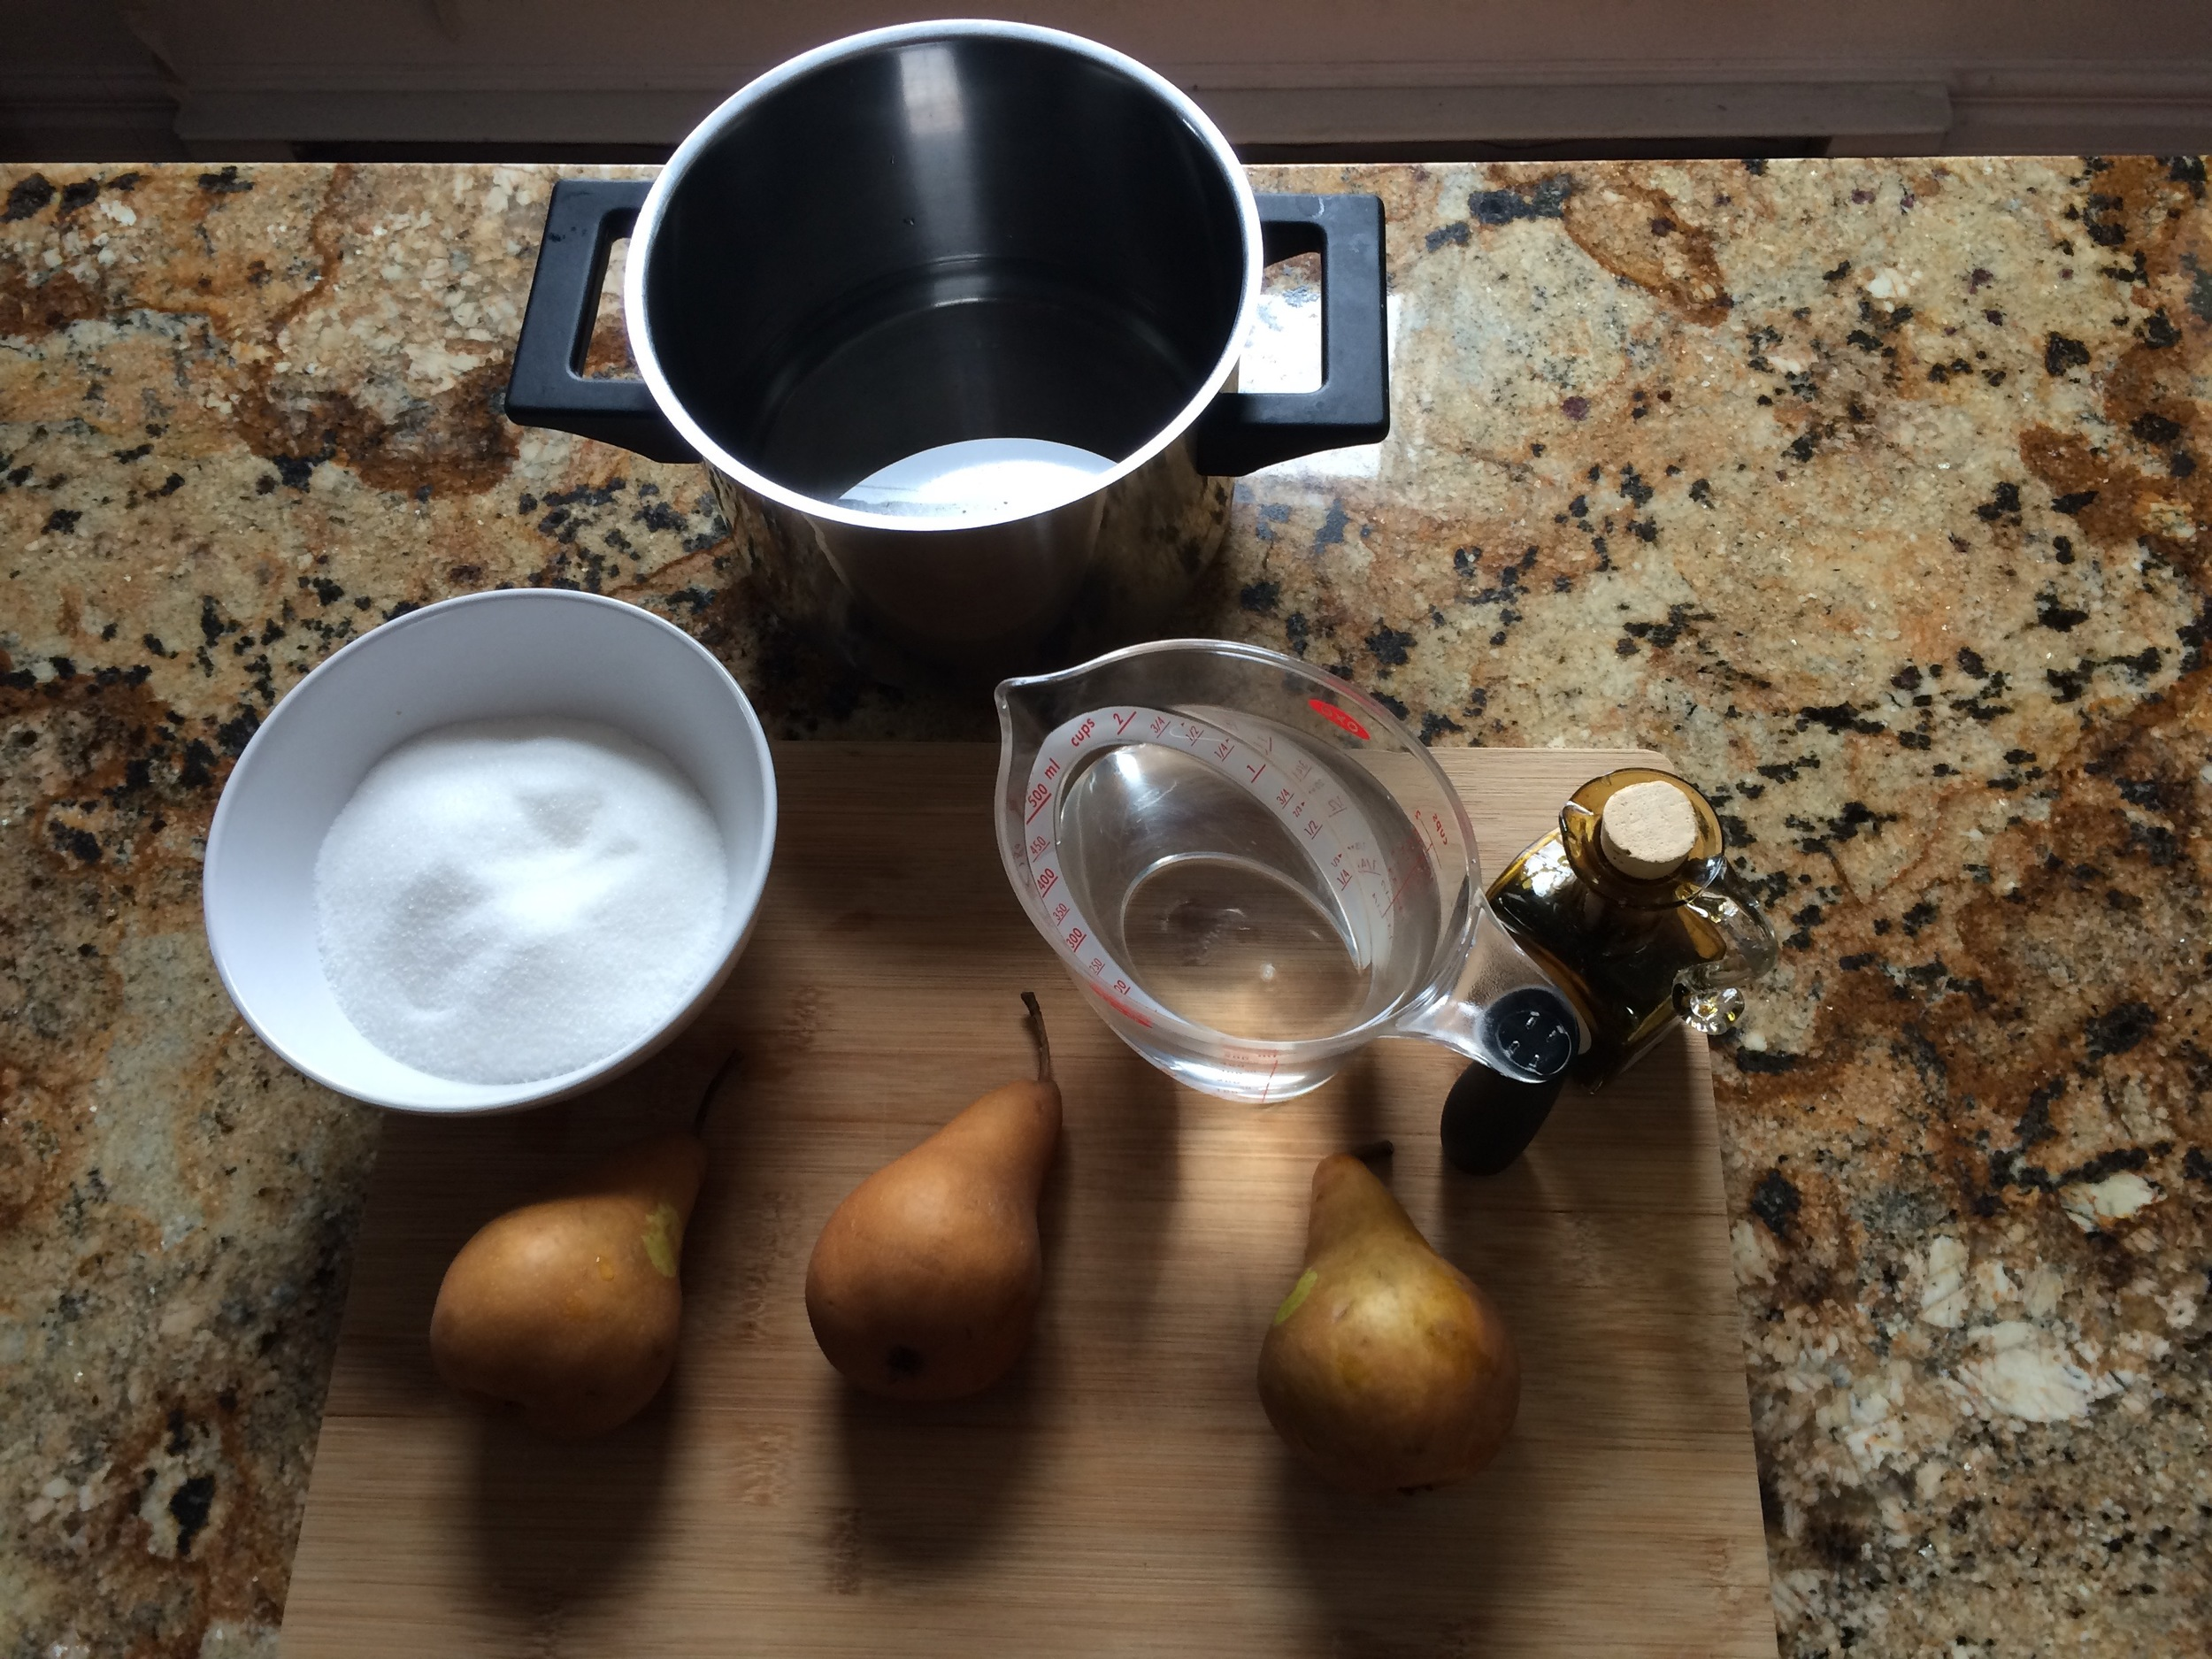 Use Bosc pears since their flesh will stand up better to the heat than other varieties. Unless you're planning on making mush.